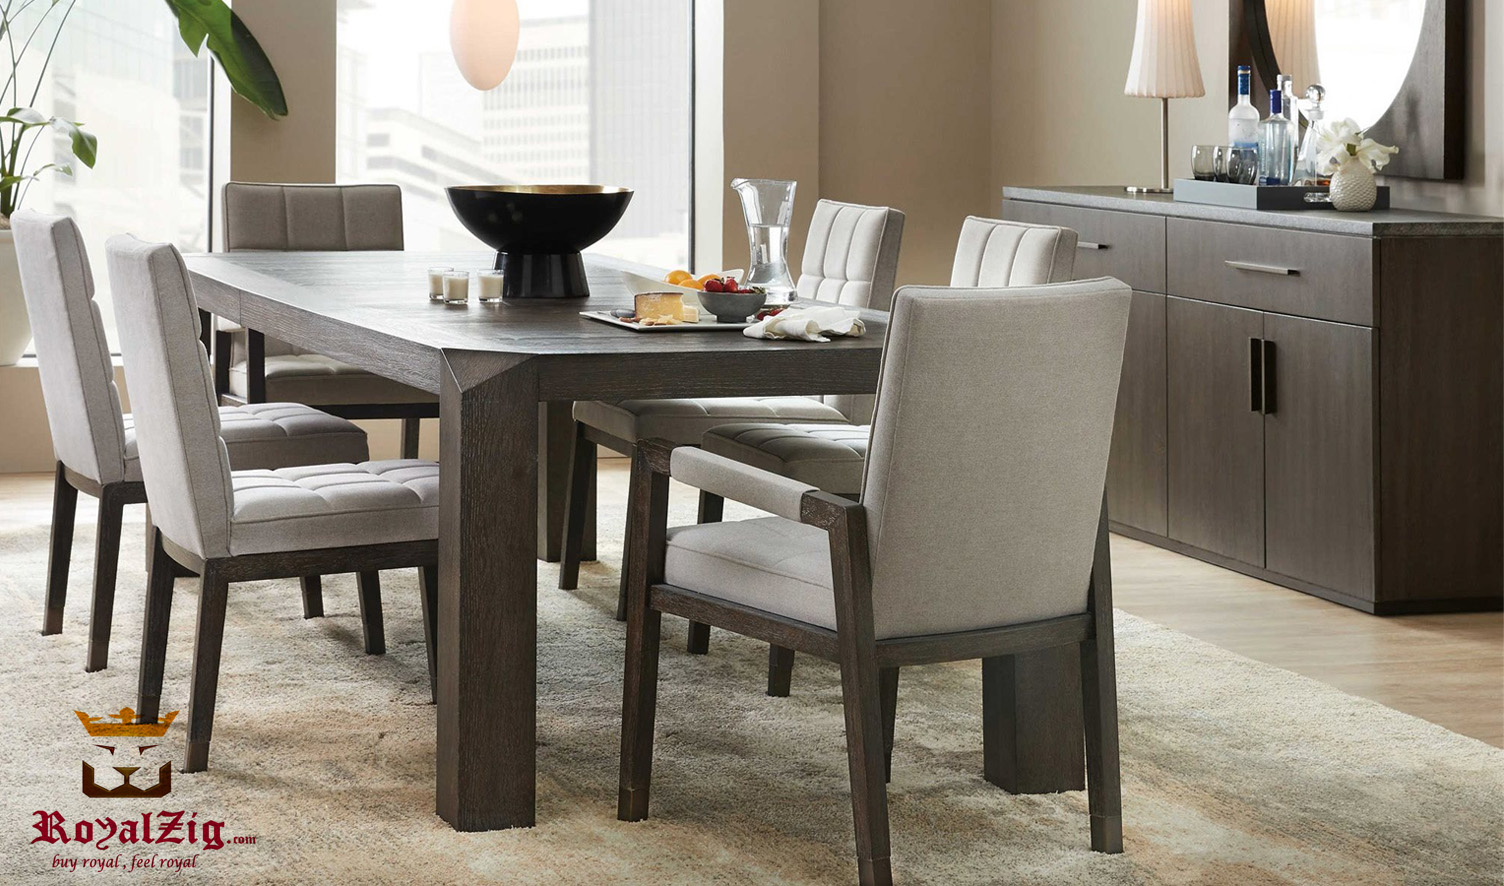 Surrey Modern Luxury Style Dining Table